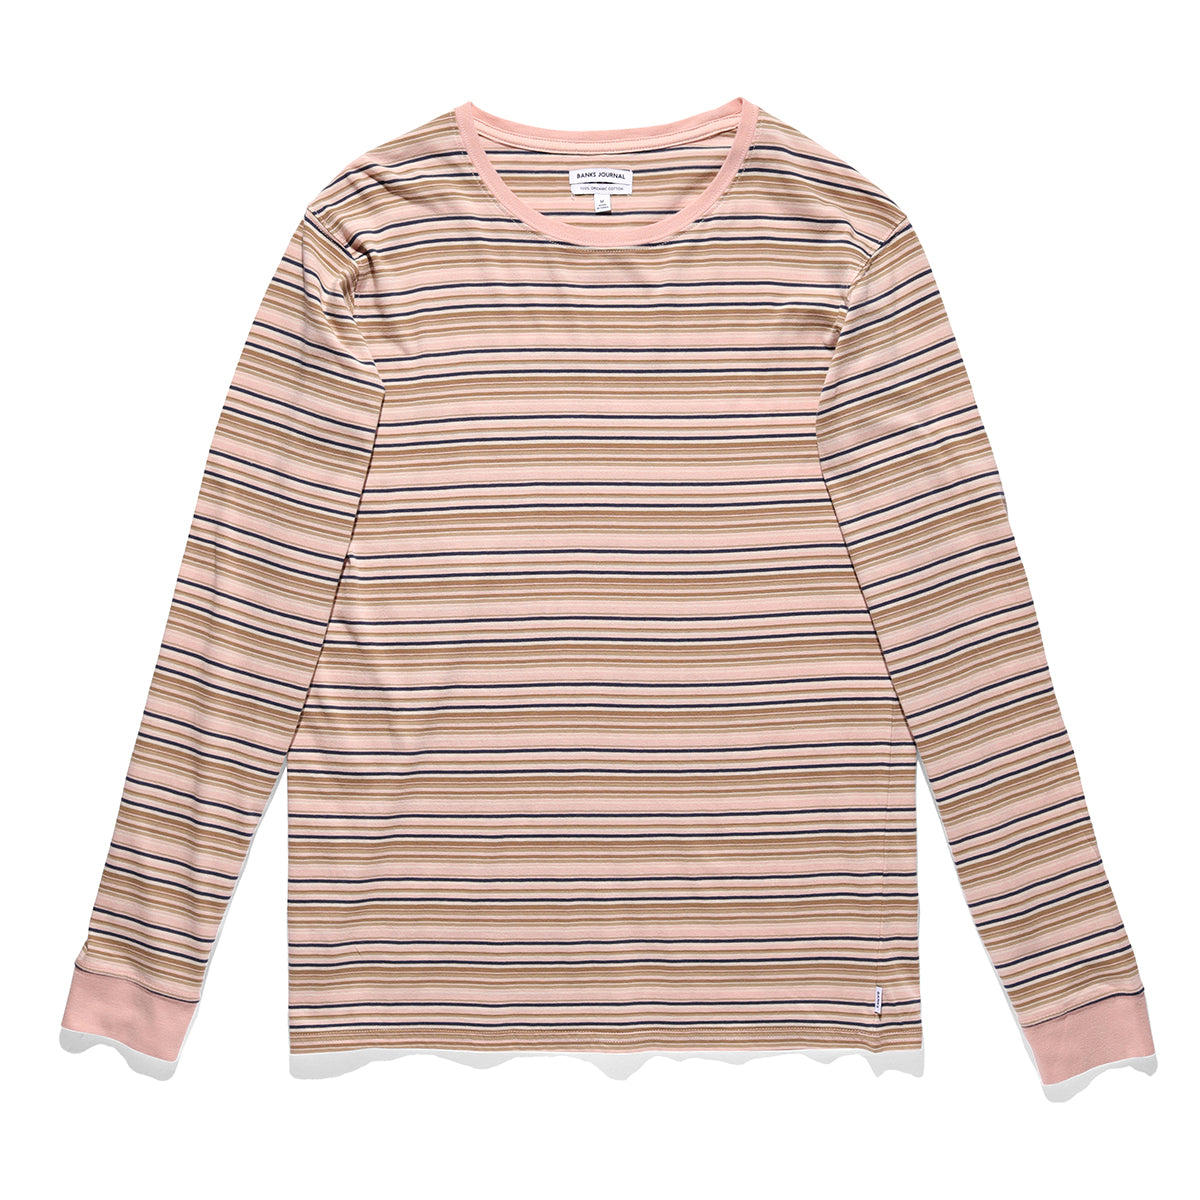 Counterparty Long Sleeve Tee - Rose Smoke